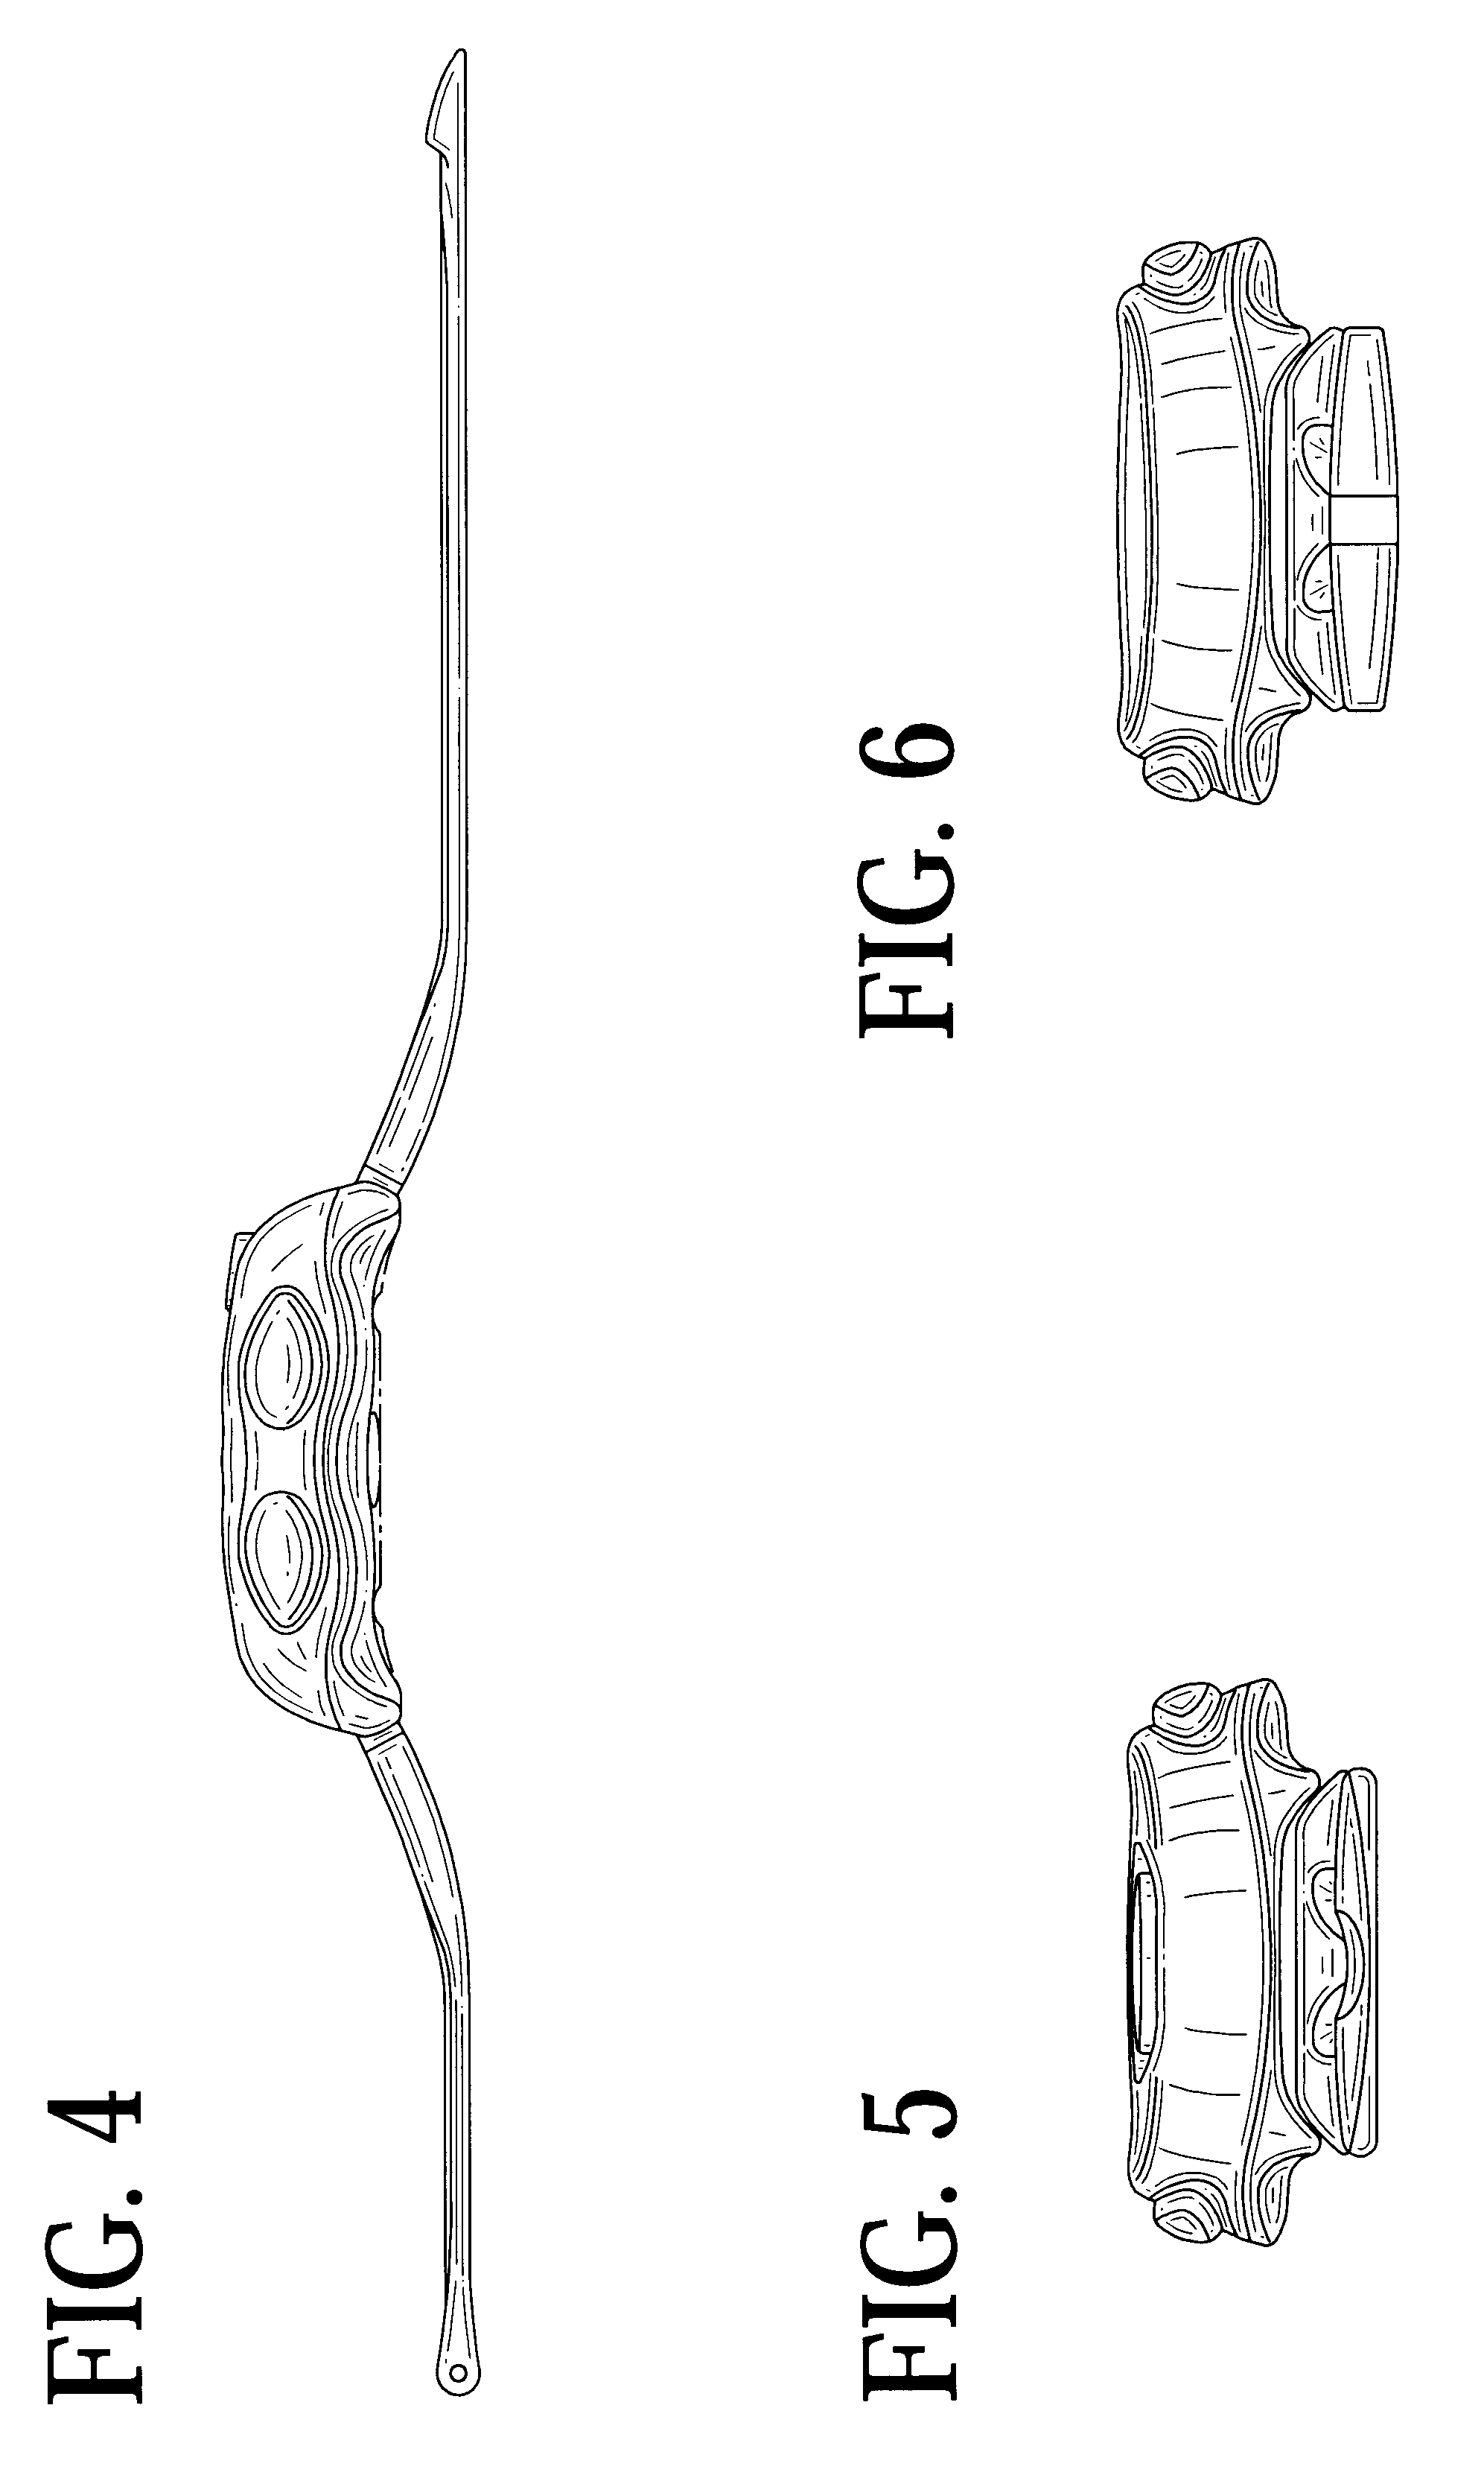 patent usd452006 - heart rate monitor